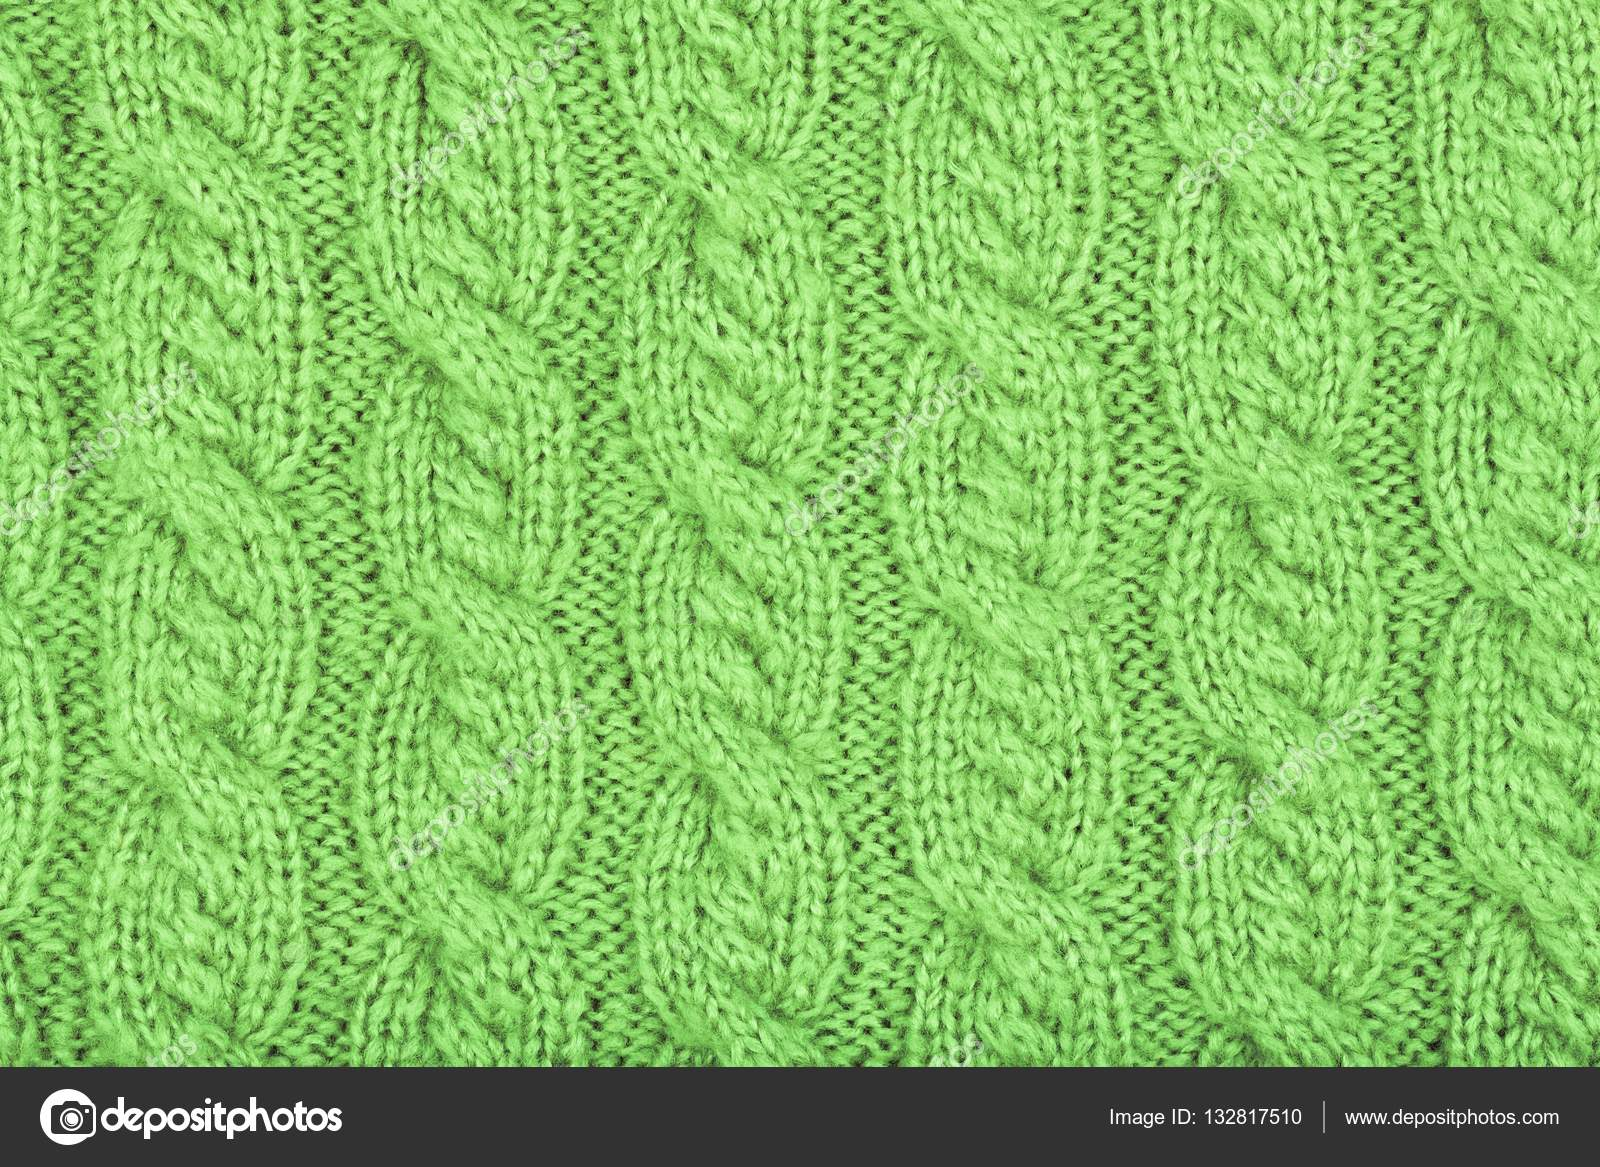 Knitting Desktop Background : Knitted fabric textured background. u2014 stock photo © arck #132817510